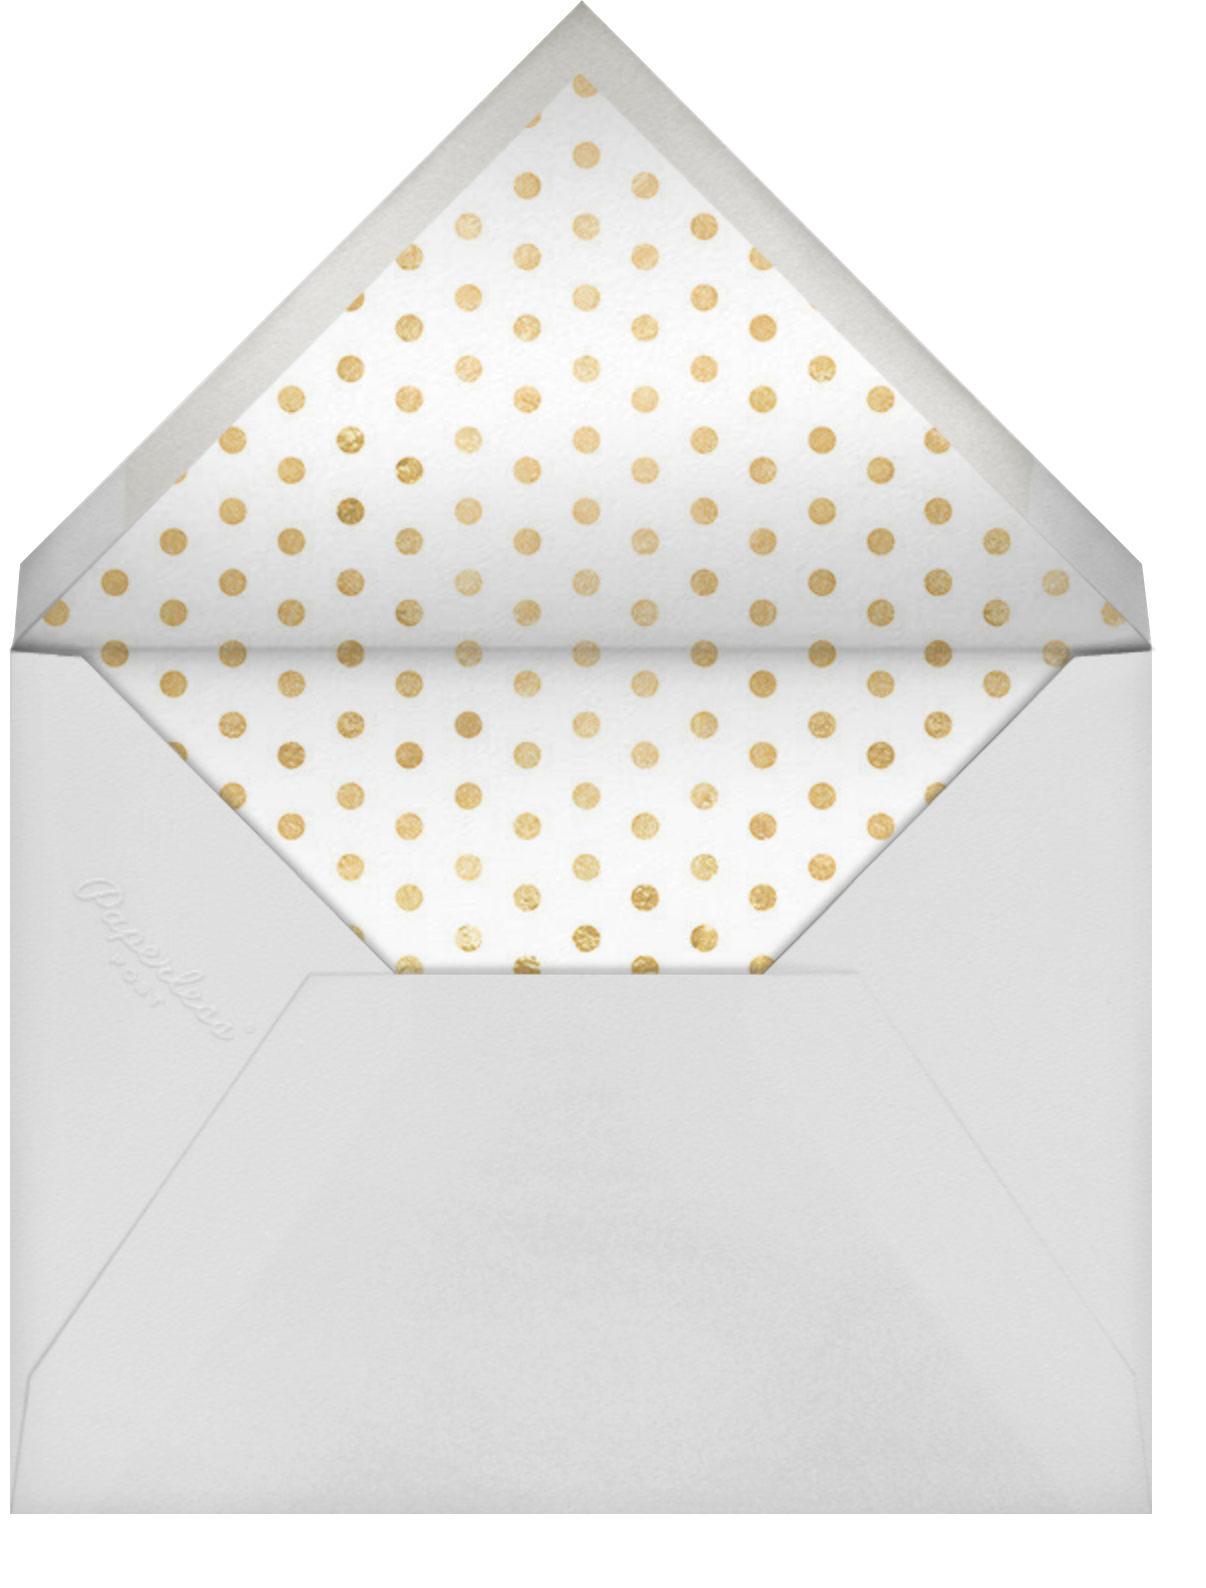 Champagne Tower - Medium - Rifle Paper Co. - Envelope